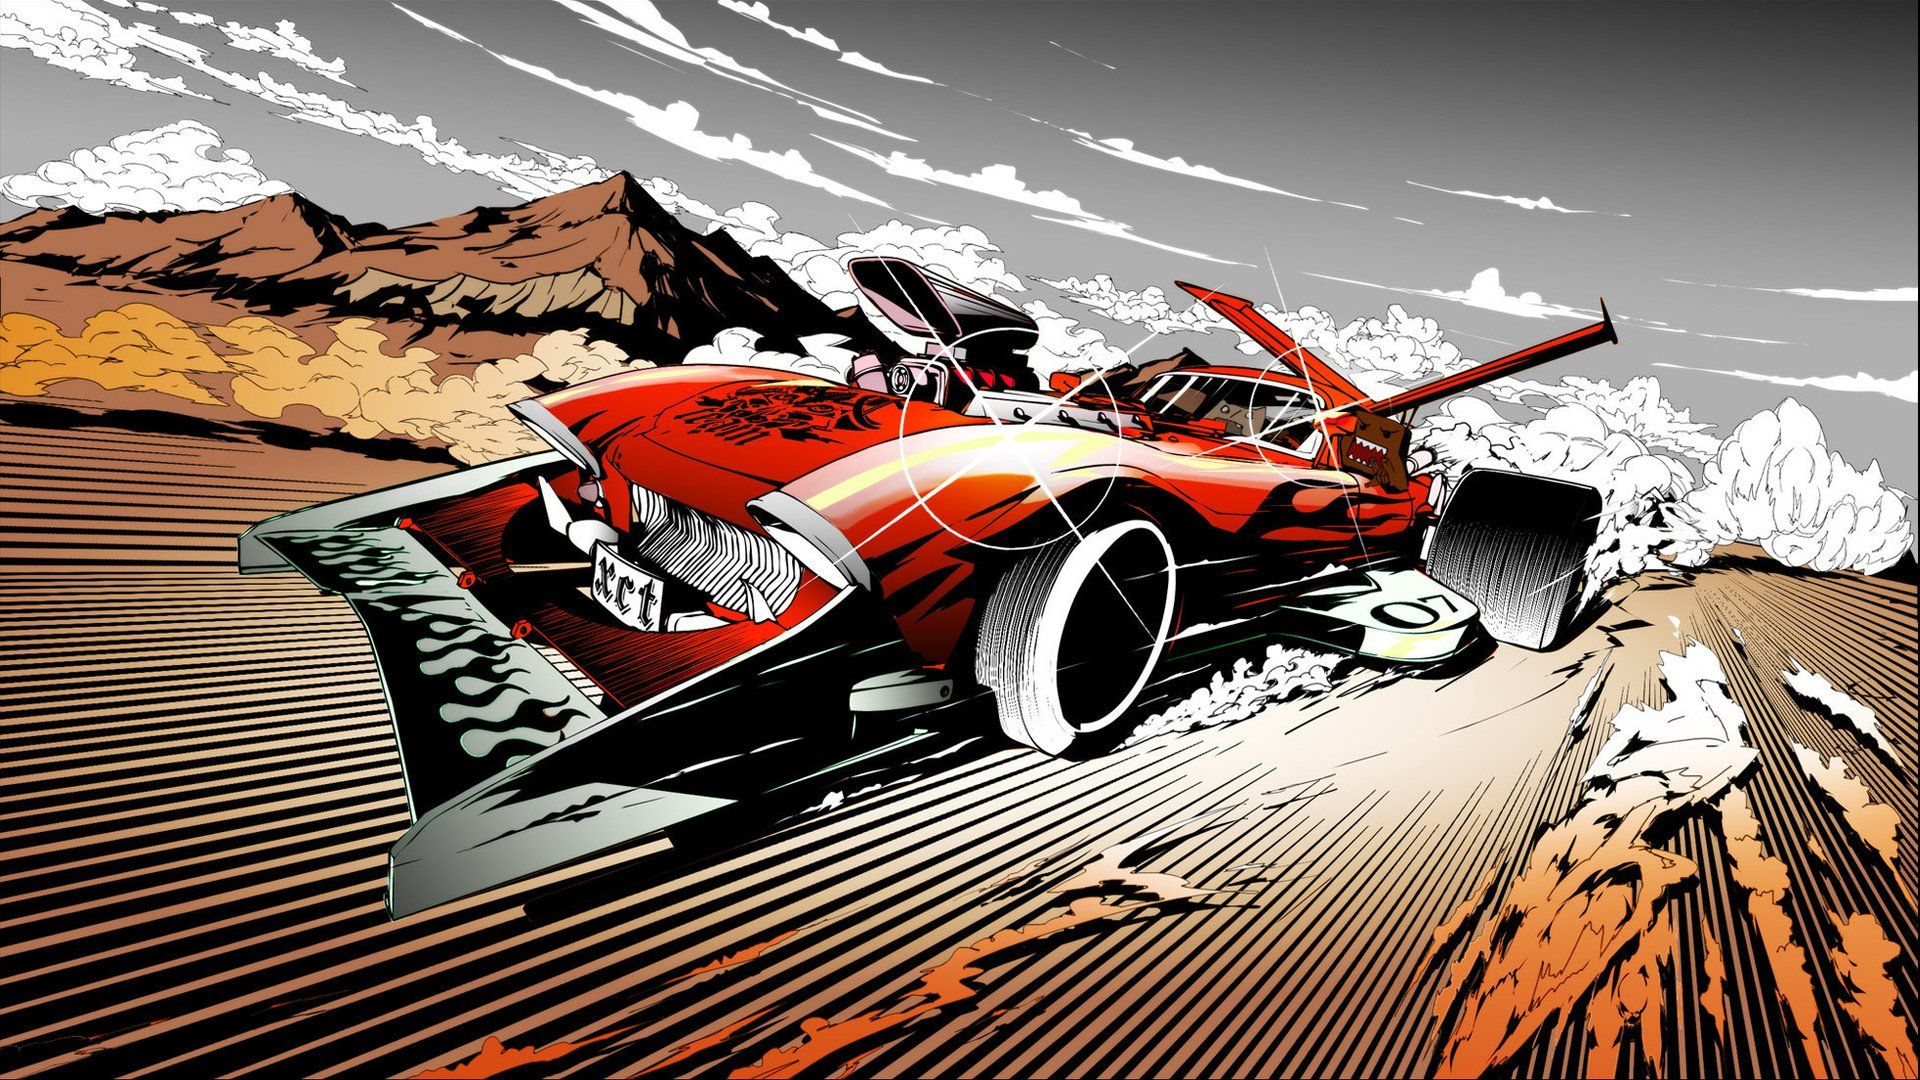 Anime About Racing Redline, Cars Art